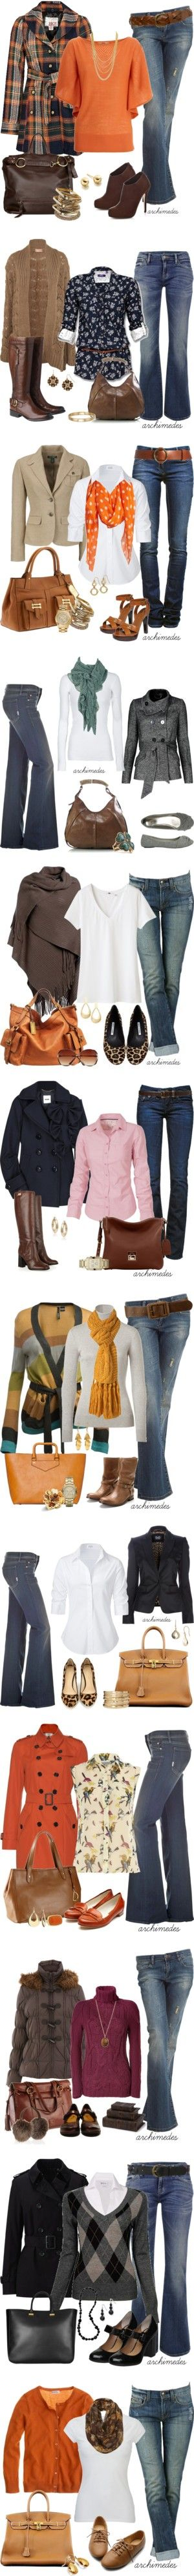 Fall clothing outfits fall fashion